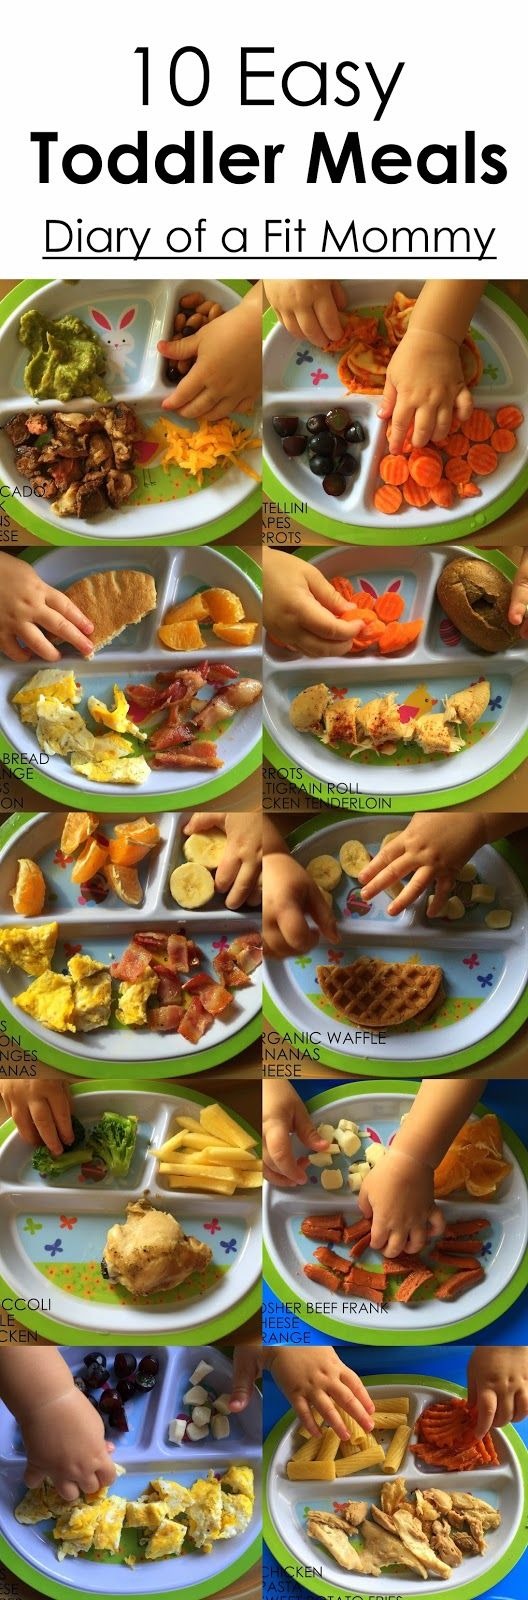 17 best ideas about toddler meal plans on pinterest lunch ideas for